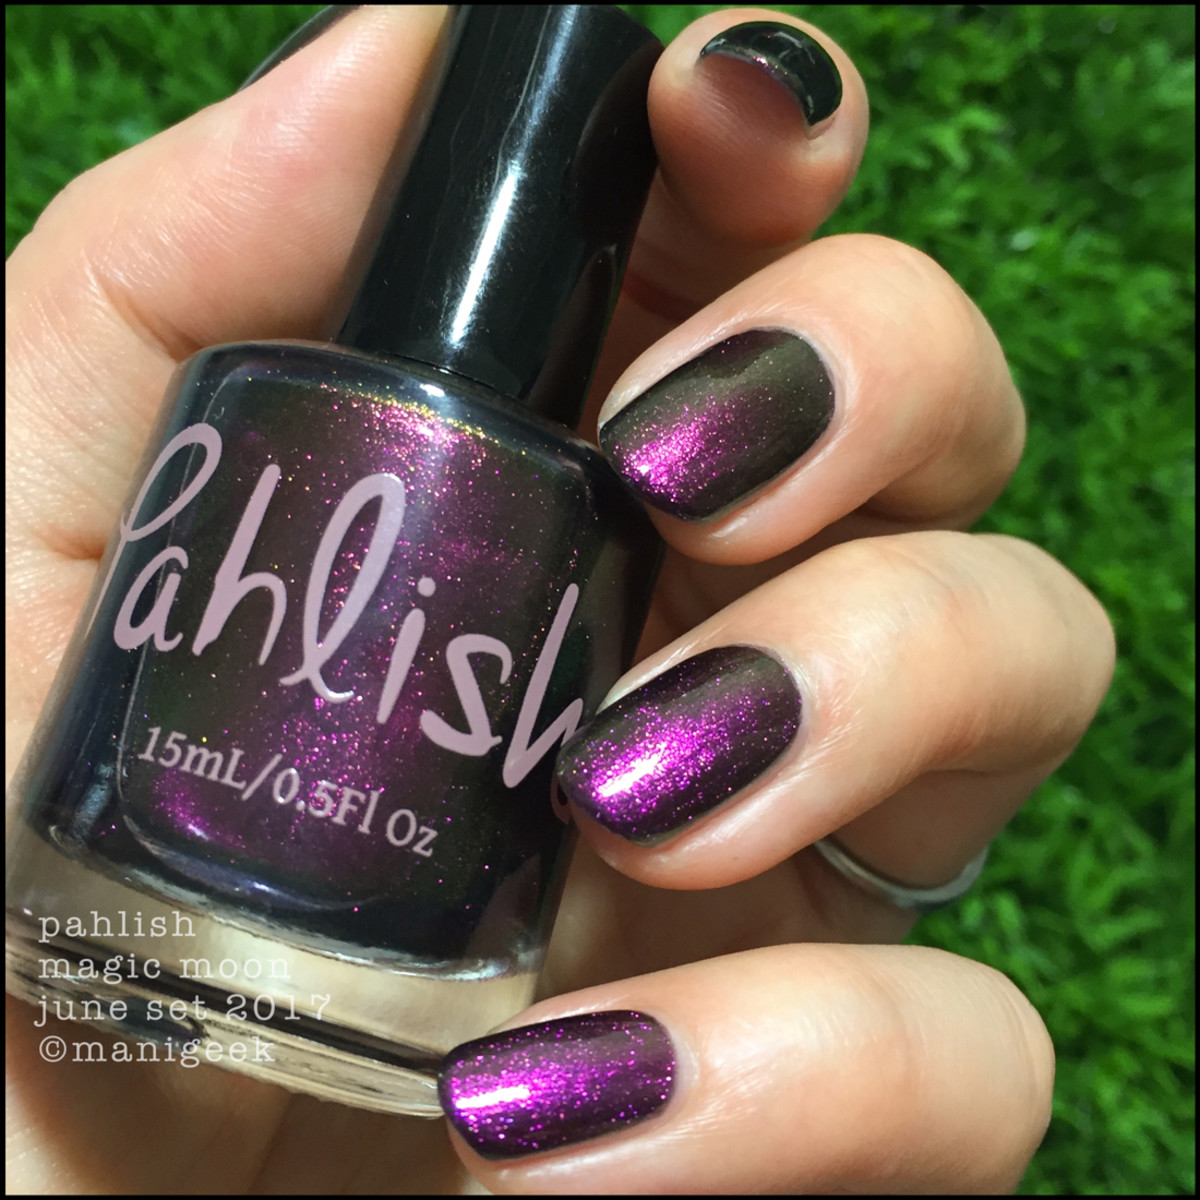 Pahlish Magic Moon Outdoors - Pahlish June 2017 Collection Swatches